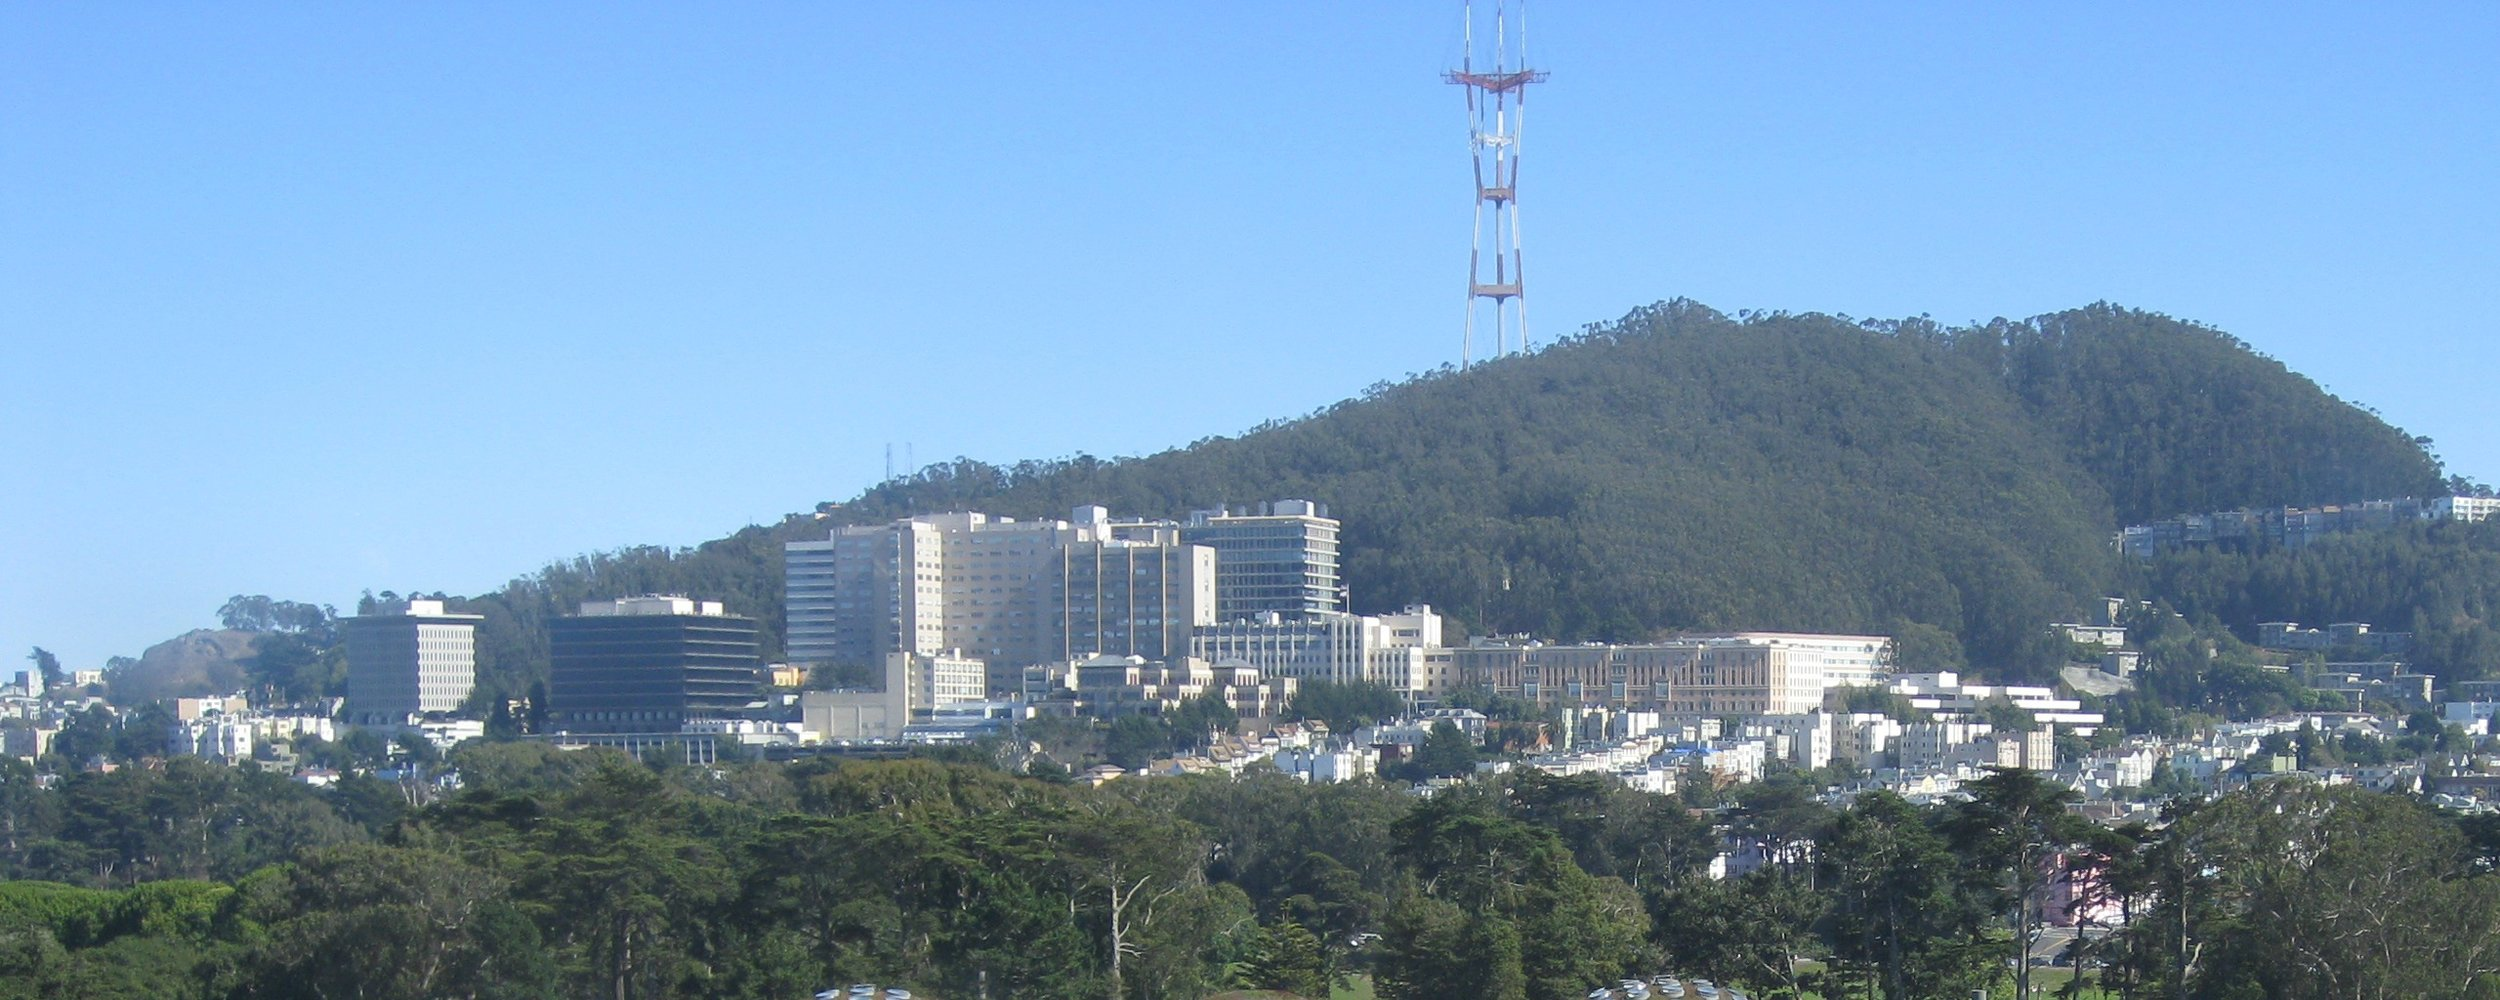 UCSF_Medical_Center_and_Sutro_Tower_in_2008.jpg